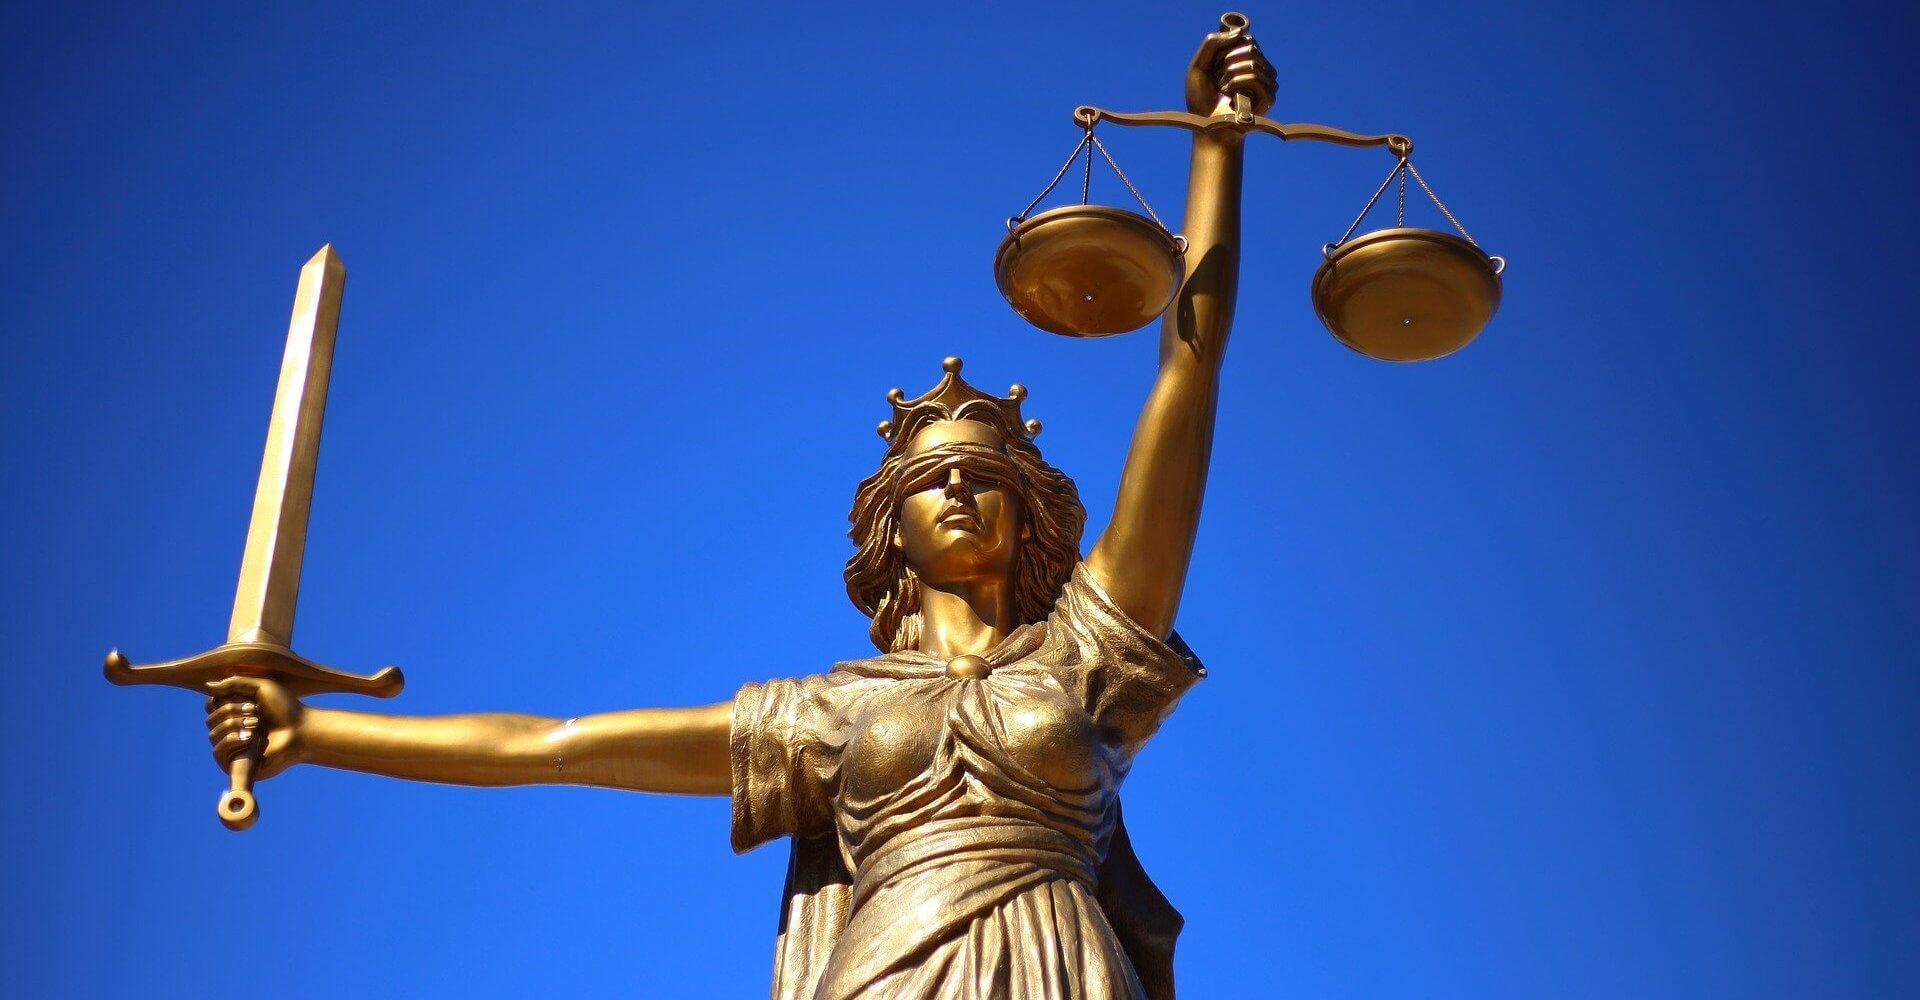 Ralli Ltd: How has Covid-19 affected Court Hearings during lockdown and going forwards? Banner